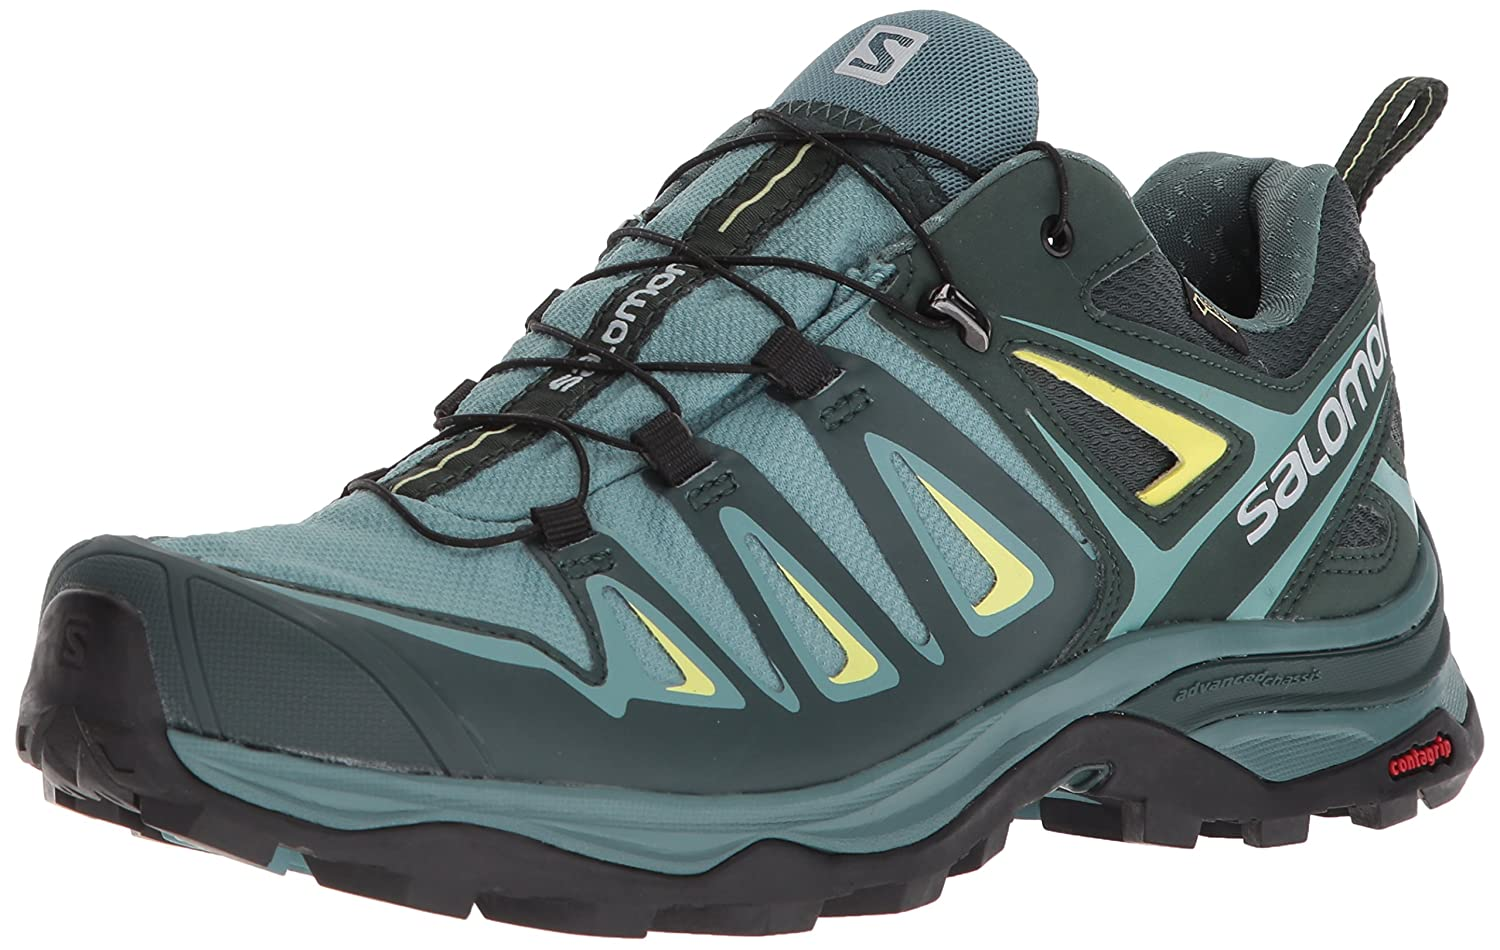 Salomon Women's X Ultra 3 GTX Hiking Shoes B071P4FGFJ 7.5 M US|Artic